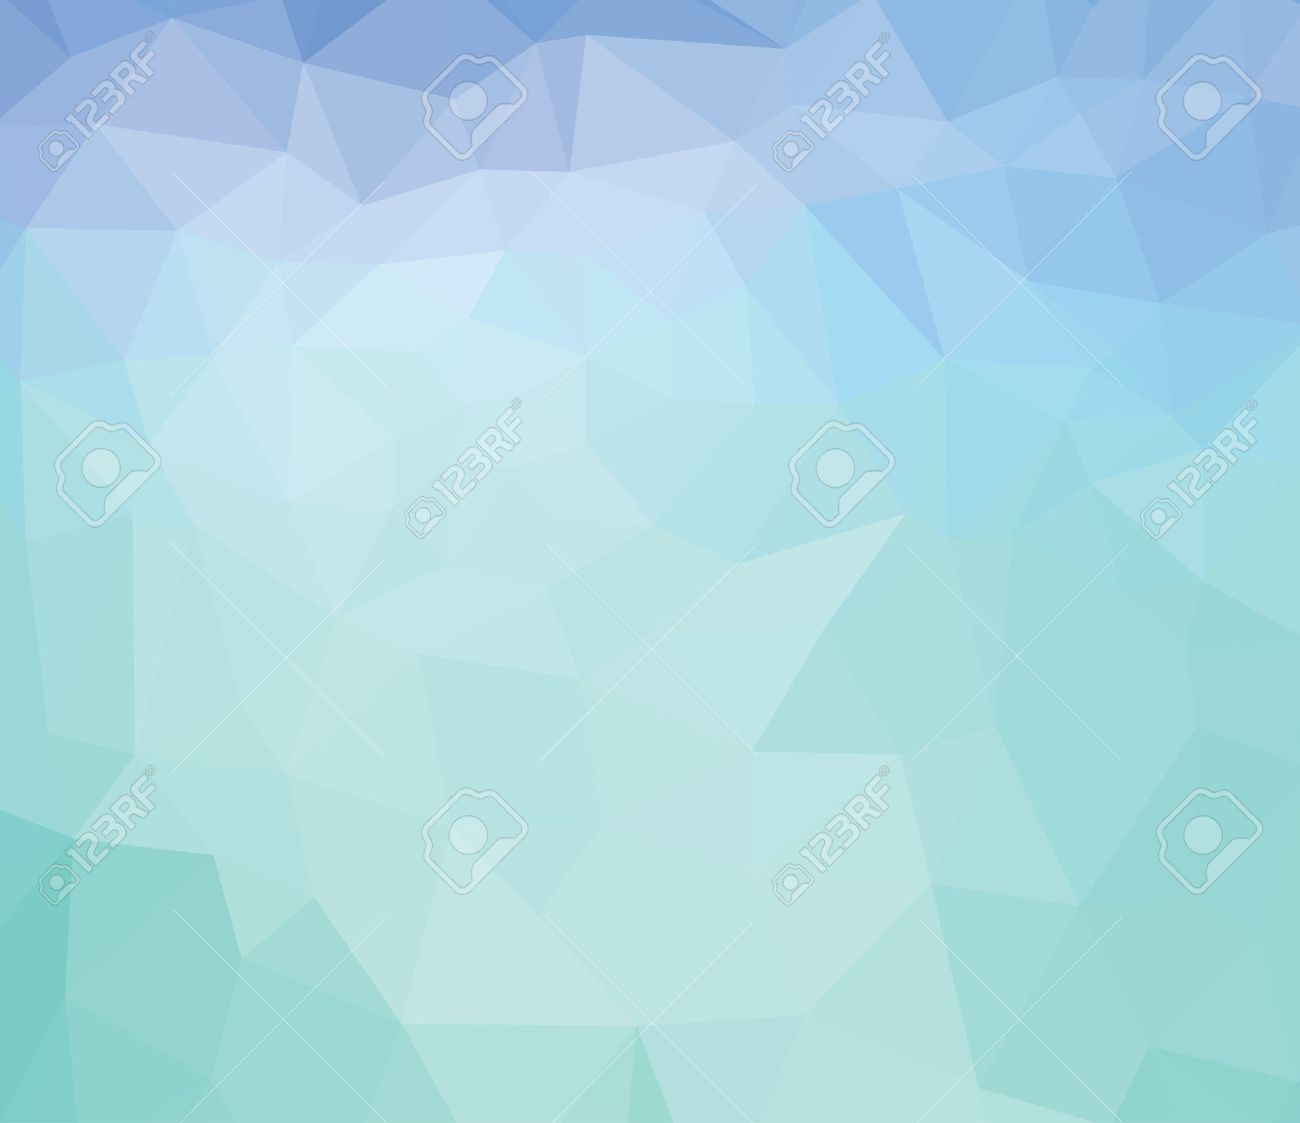 abstract background consisting of green, blue, - 49830200